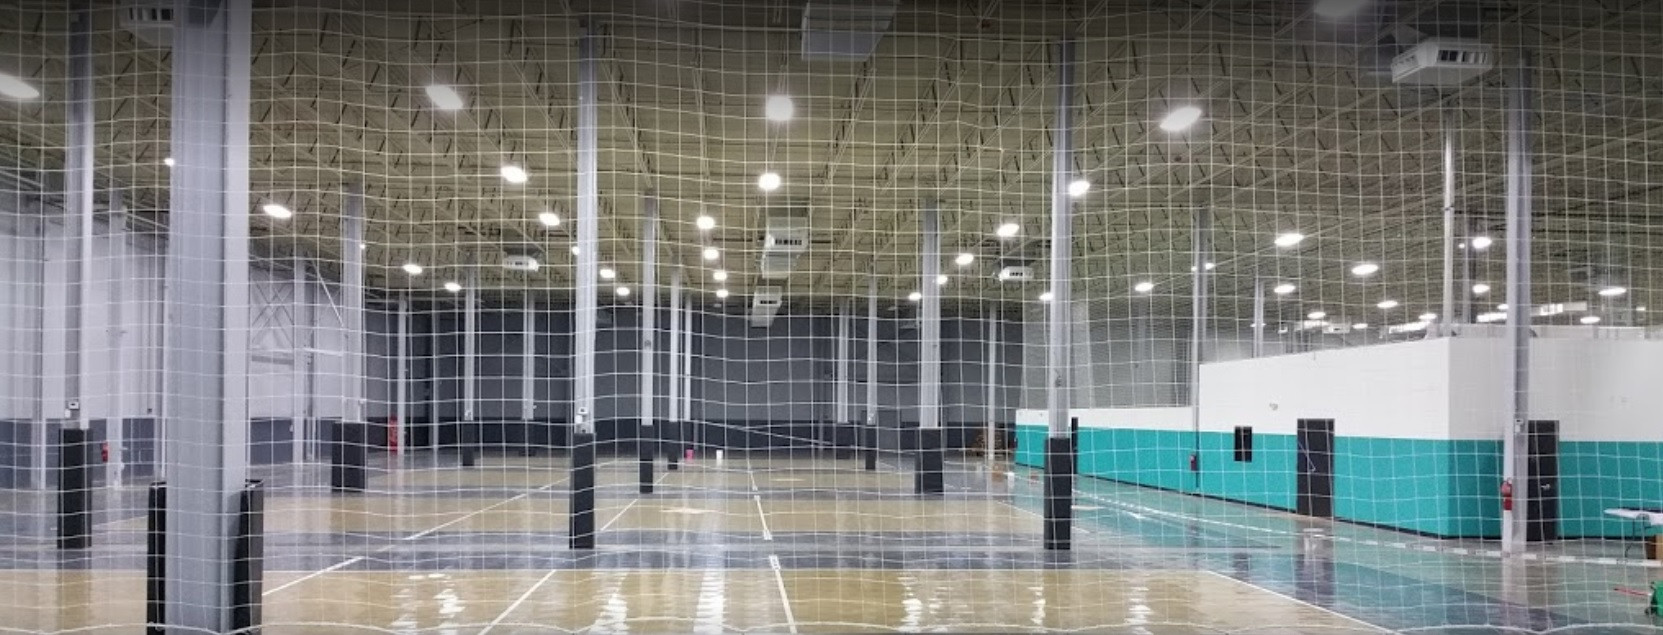 Volleyball and Basketball Courts